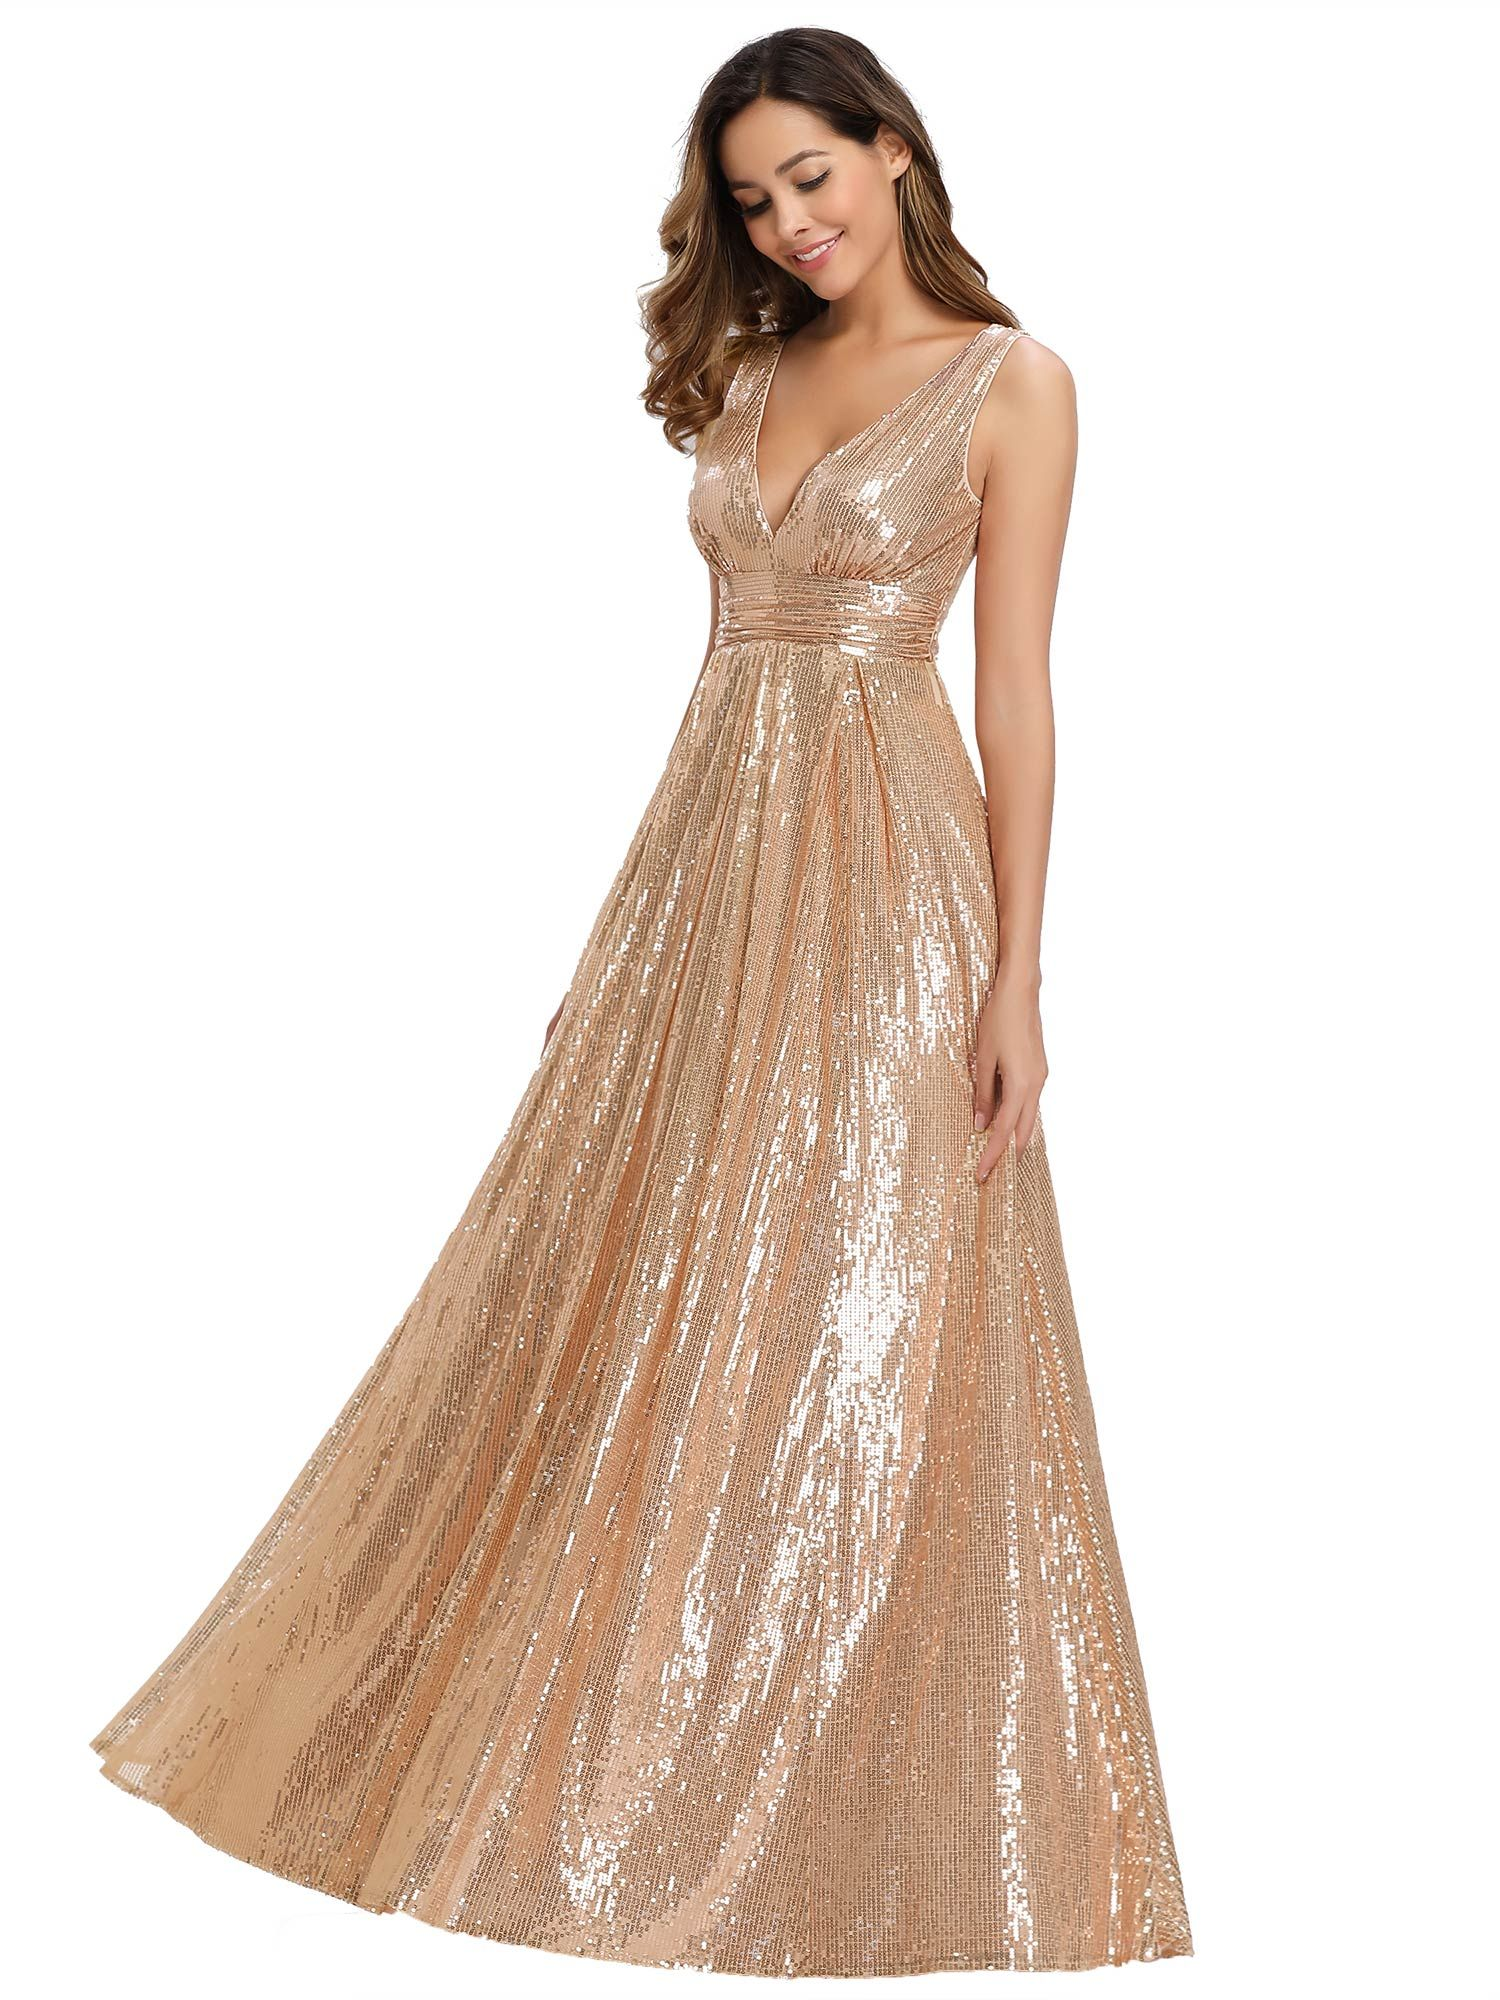 Ever Pretty Us Rose Gold V Neck Long Evening Dresses Wedding Pageant Party Gowns Gold Lace Dress Long Lace Wedding Guest Dress Lace Dress